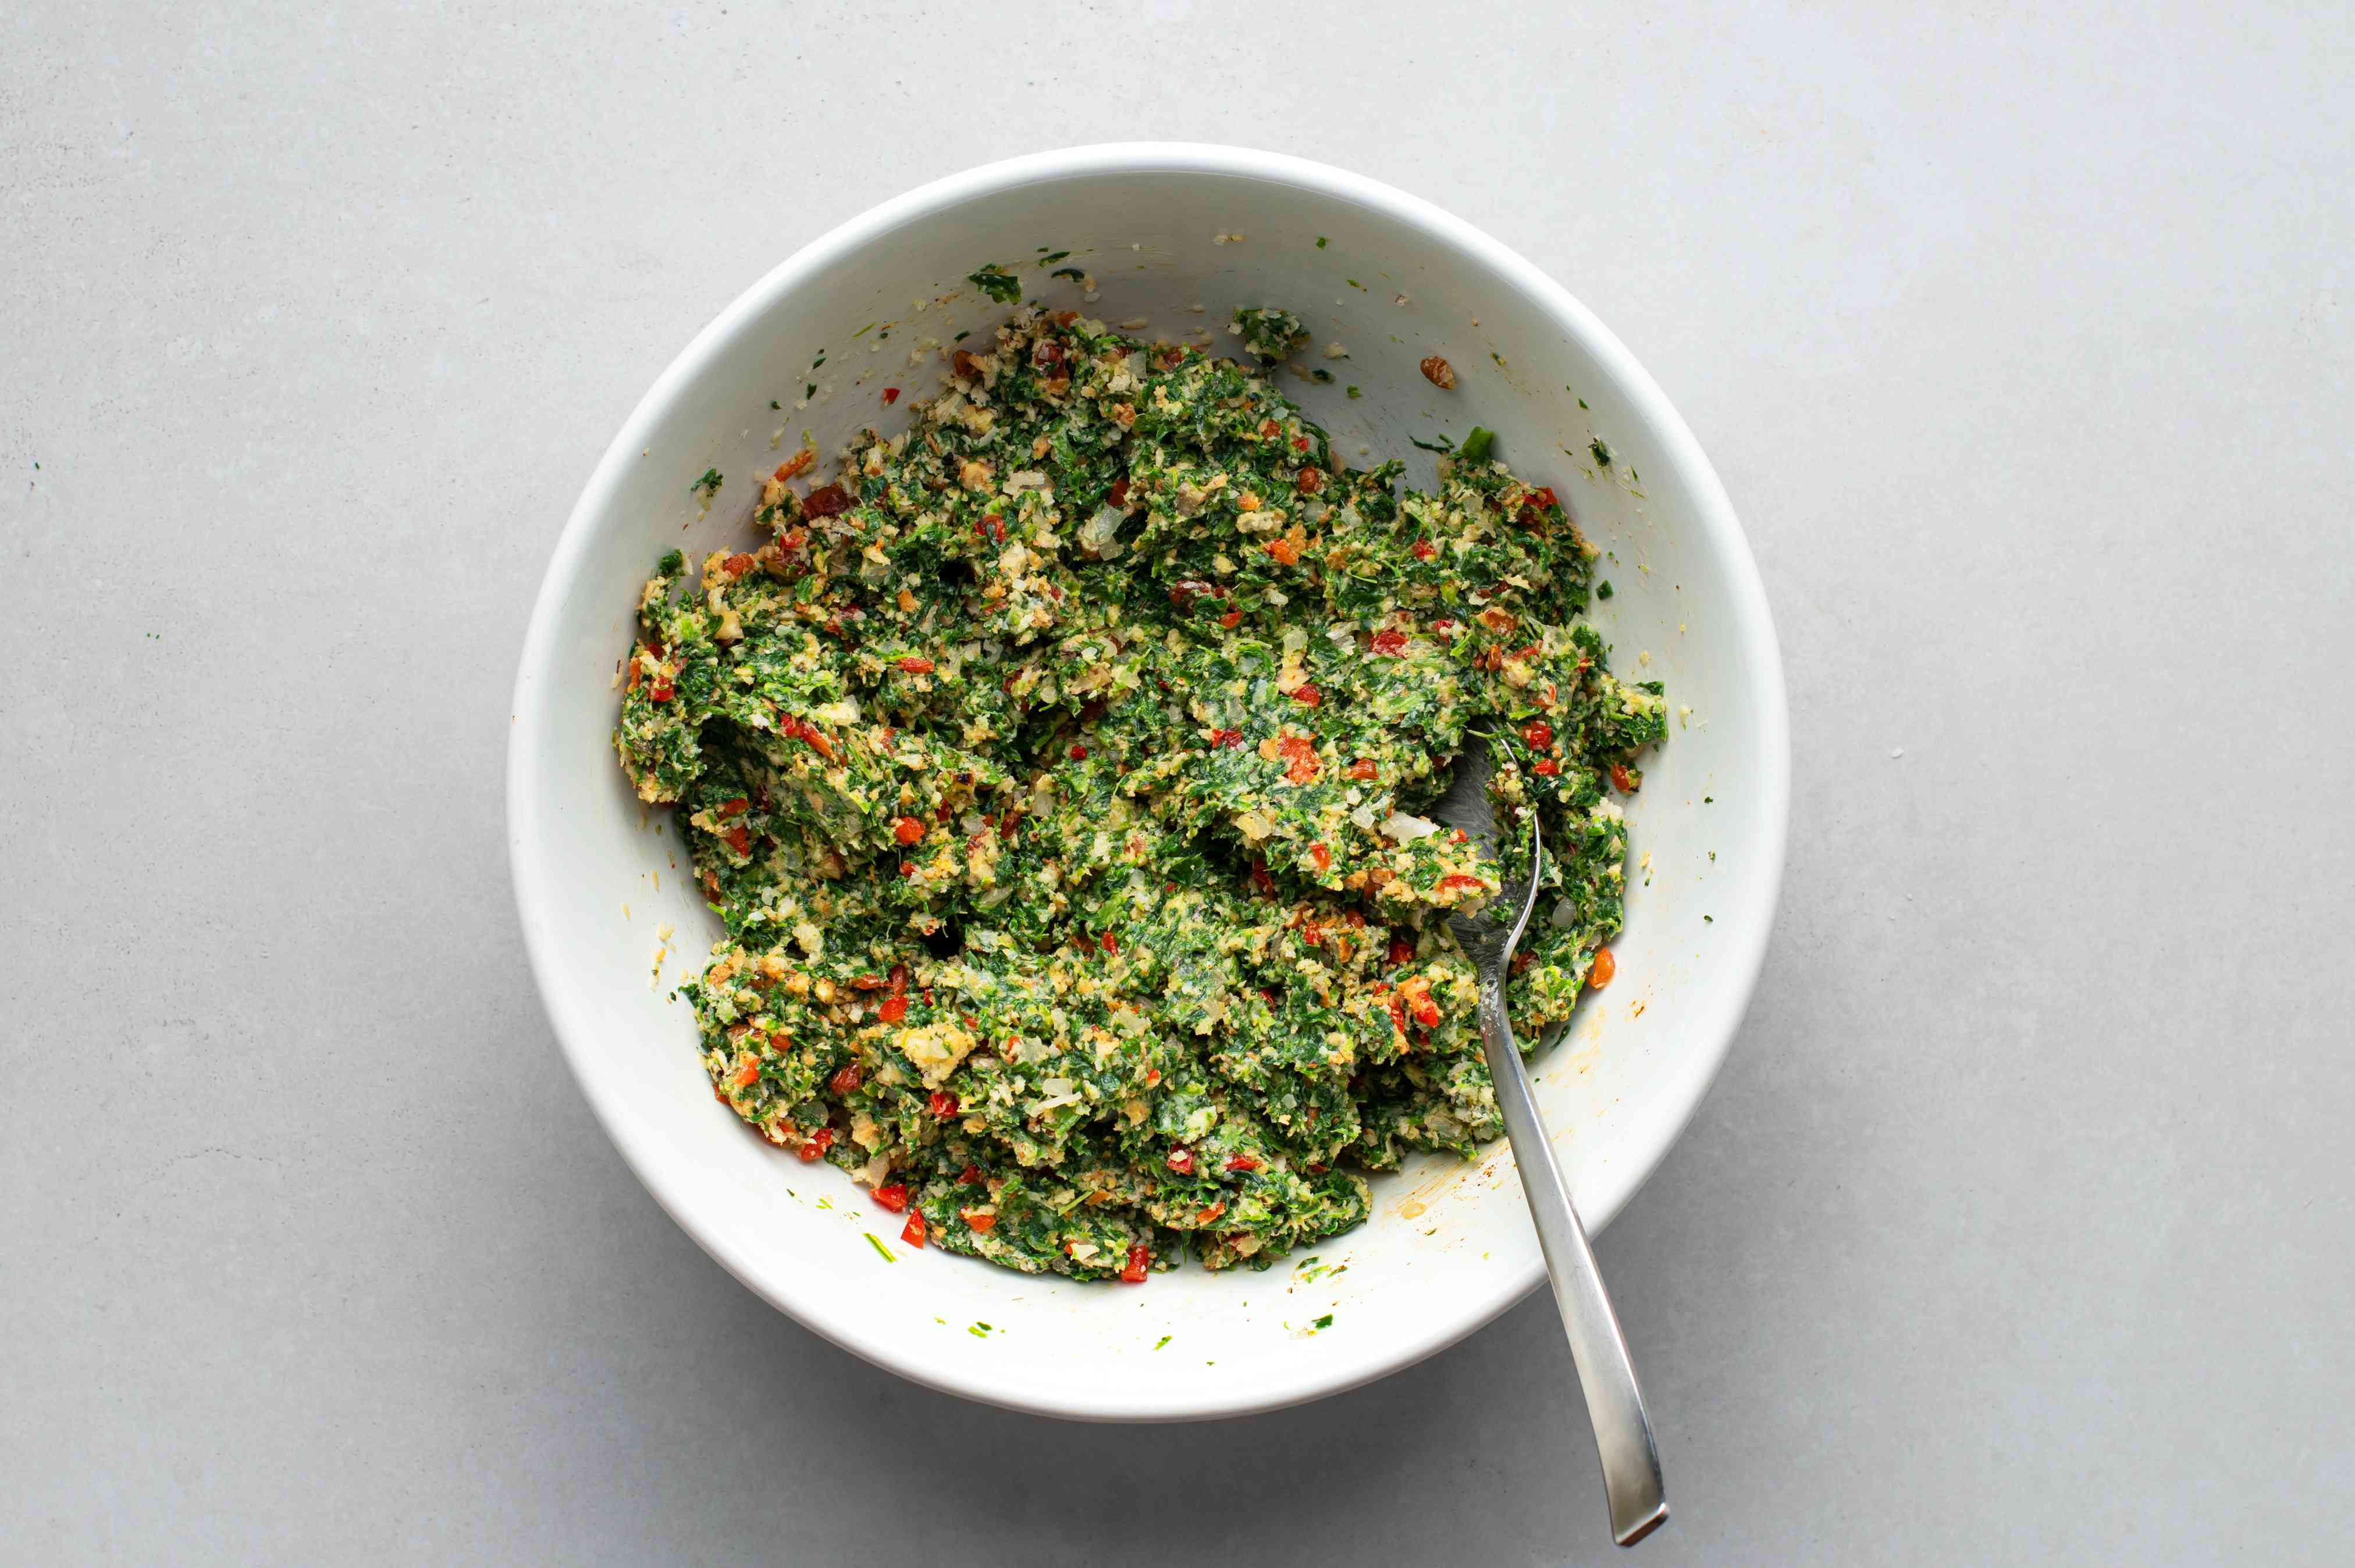 stuffing crumbs, Parmesan cheese, and minced onions combined with spinach and butter